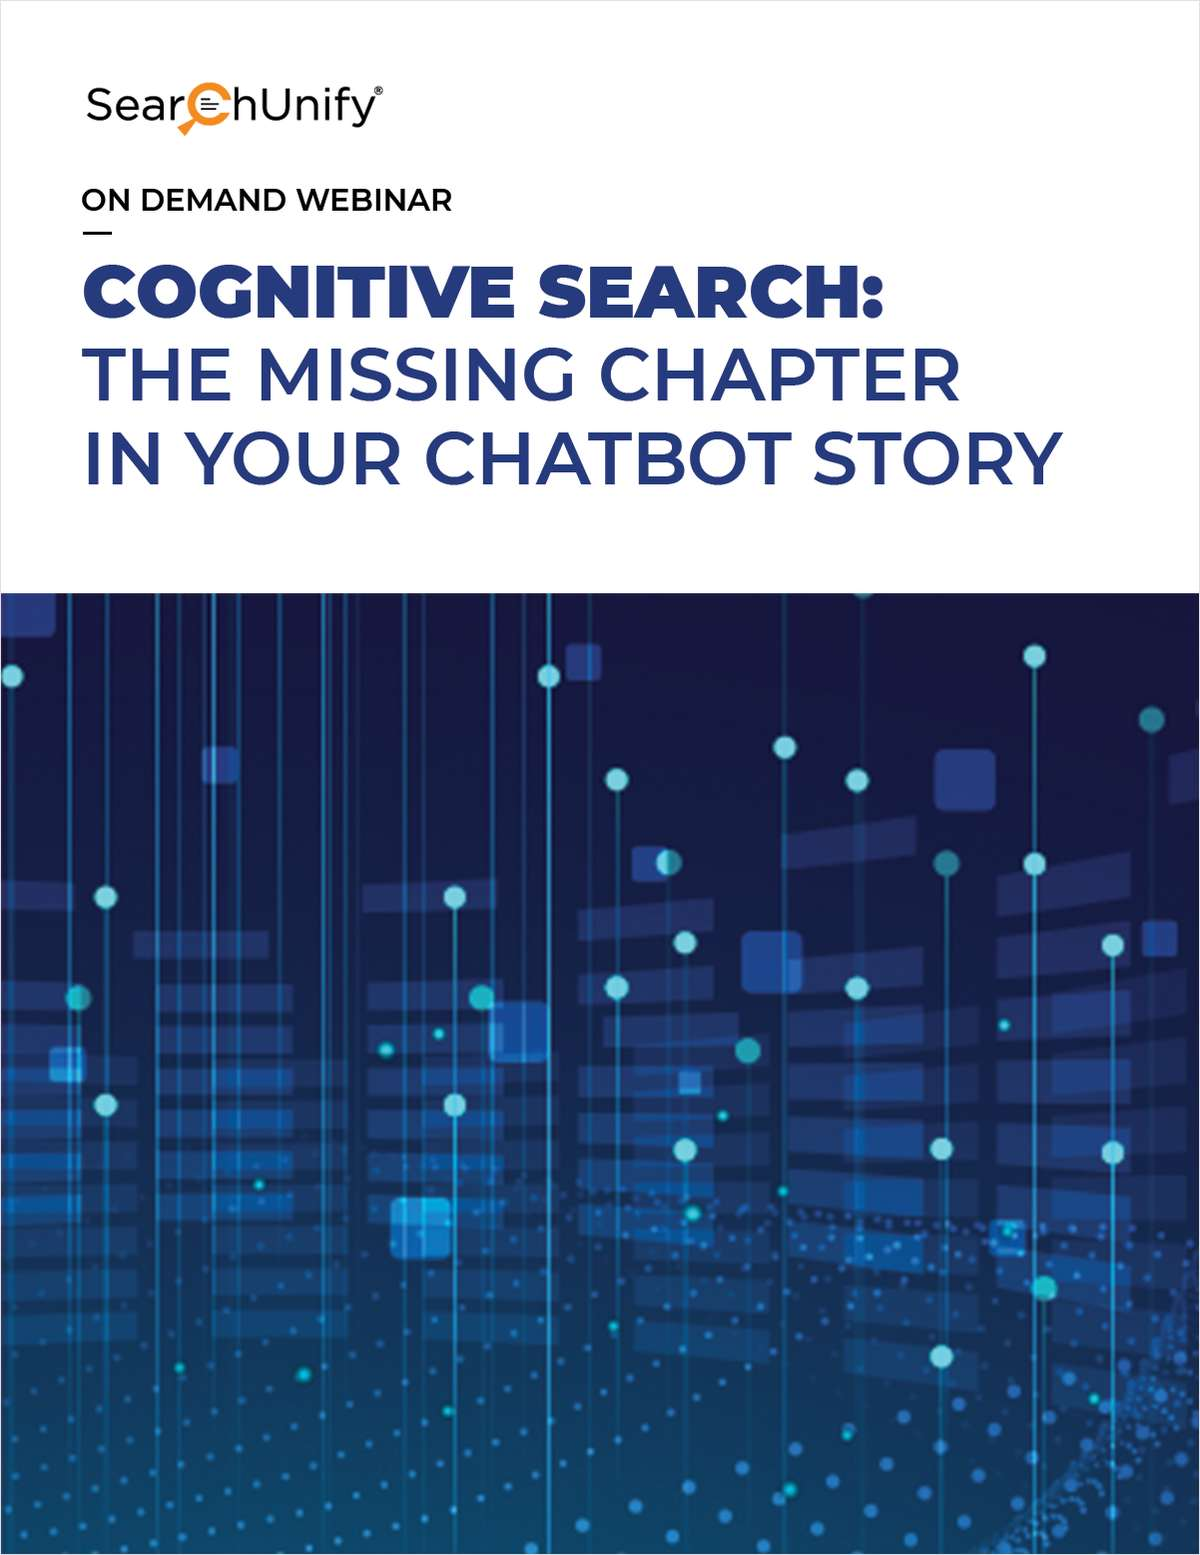 Cognitive Search: The Missing Chapter in Your Chatbot Story